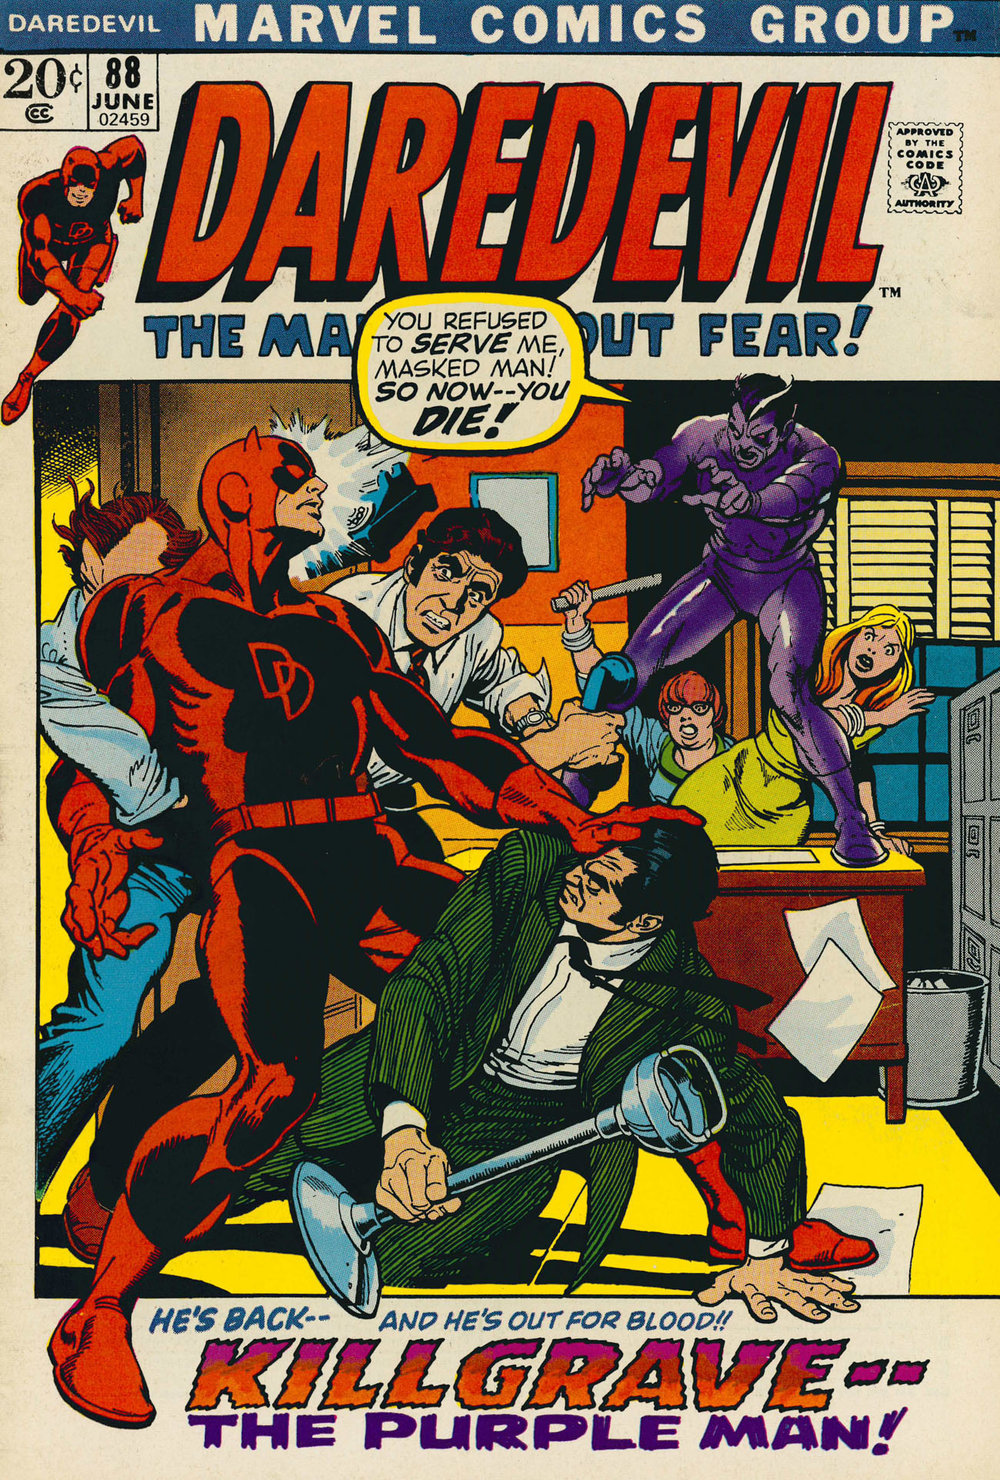 Daredevil (1964) #88, cover penciled by Gil Kane & inked by Ralph Reese.